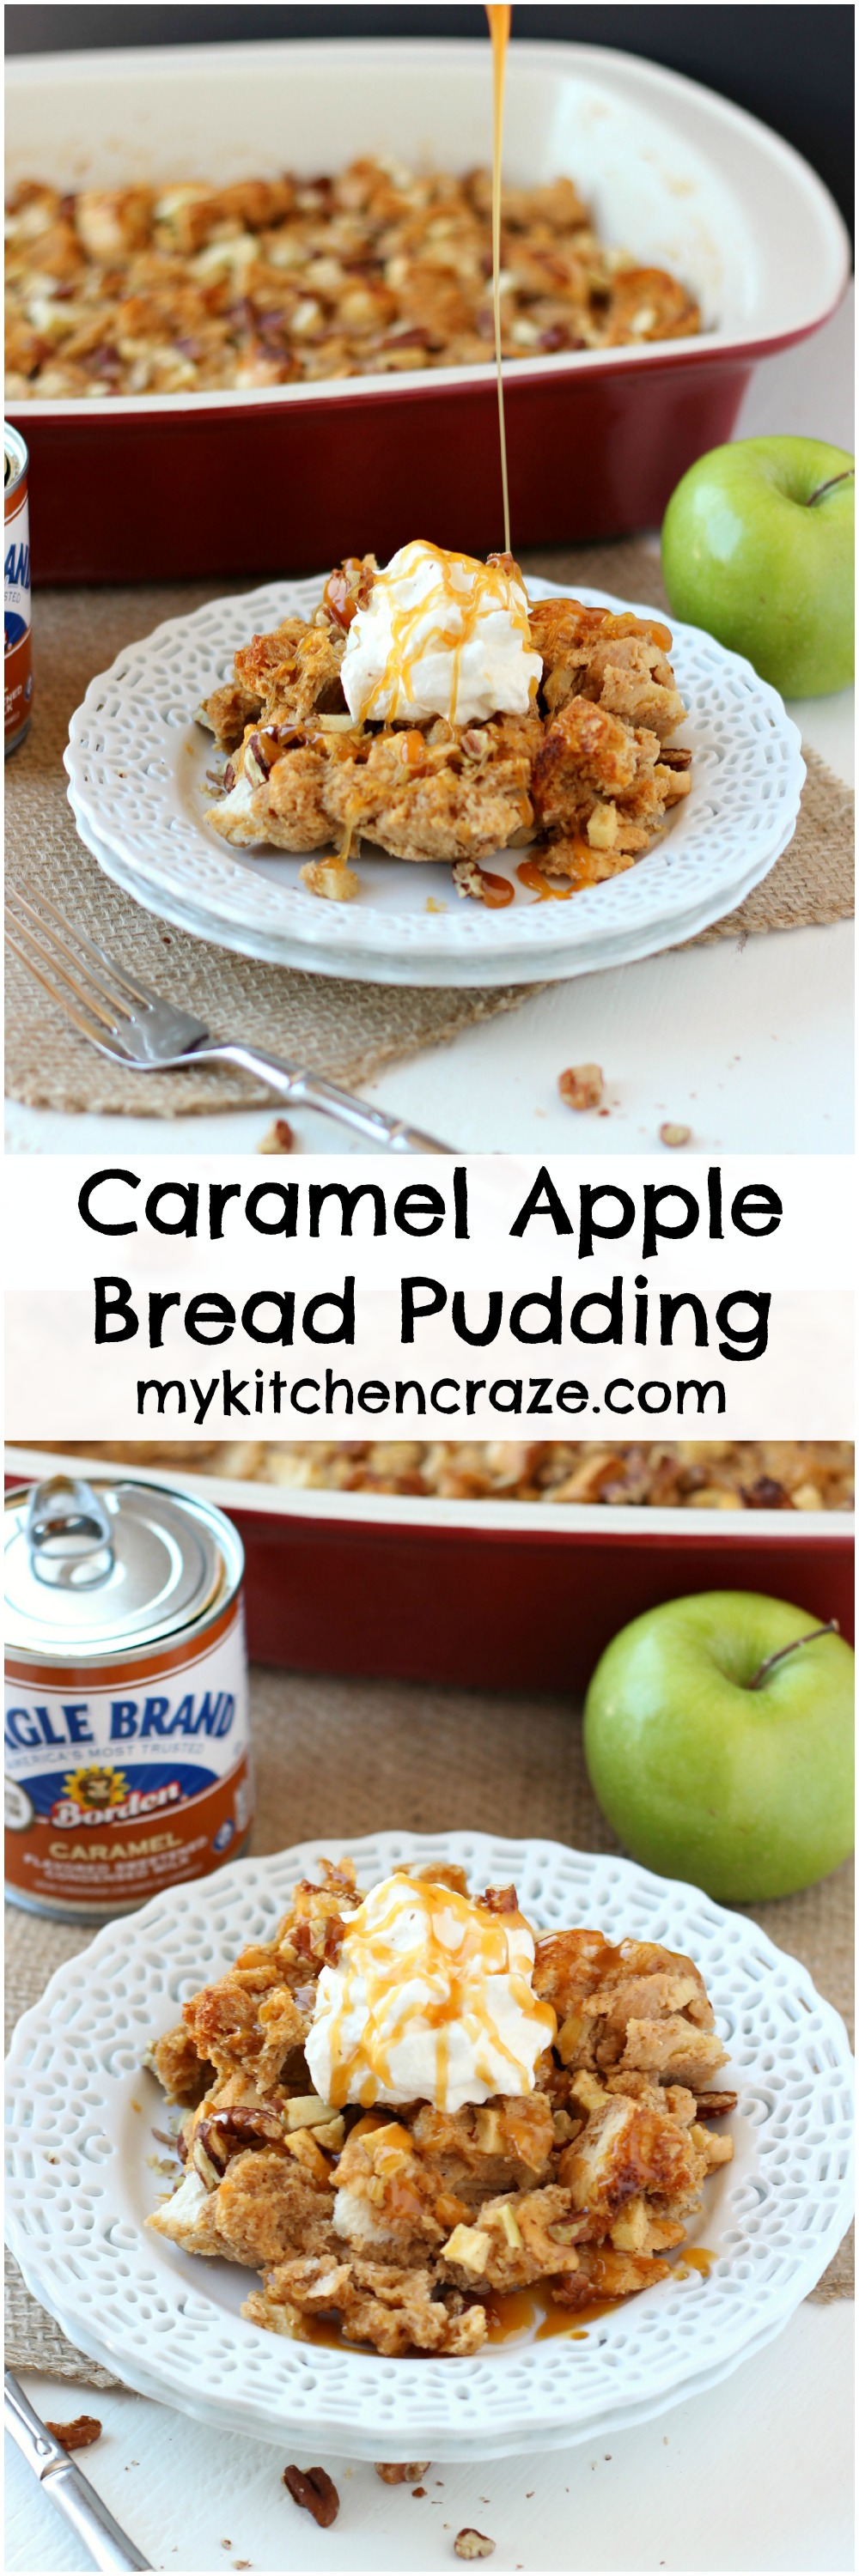 Spiced Caramel-Apple Bread Pudding Recipes — Dishmaps